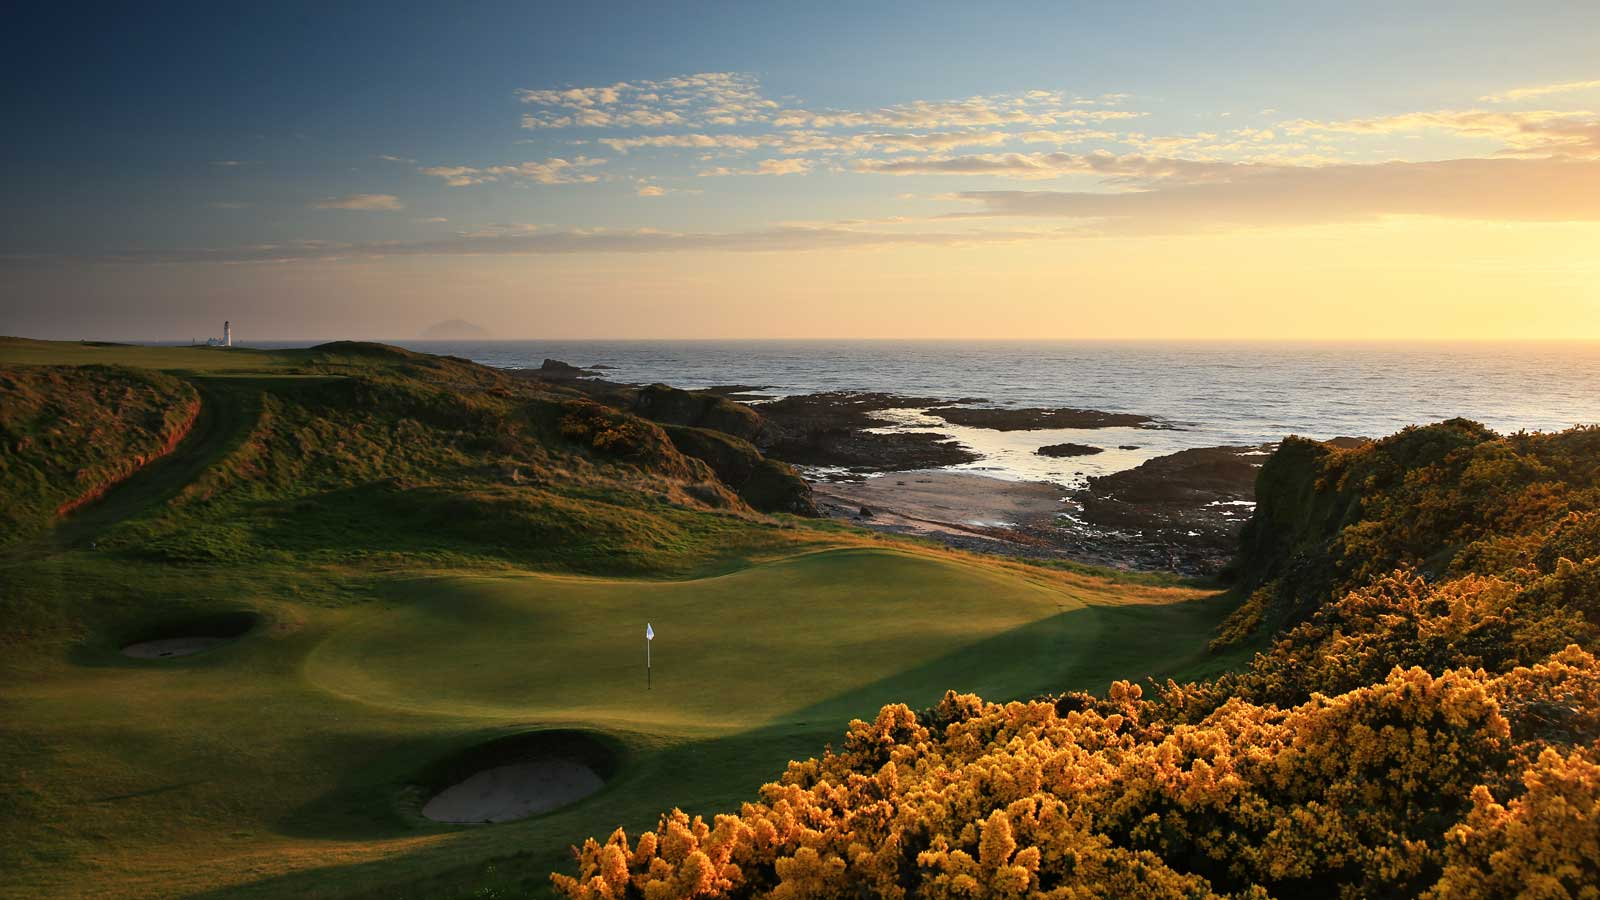 The Kintyre Championship 72-par course, Trump Turnberry Resort, гольф, путешествия